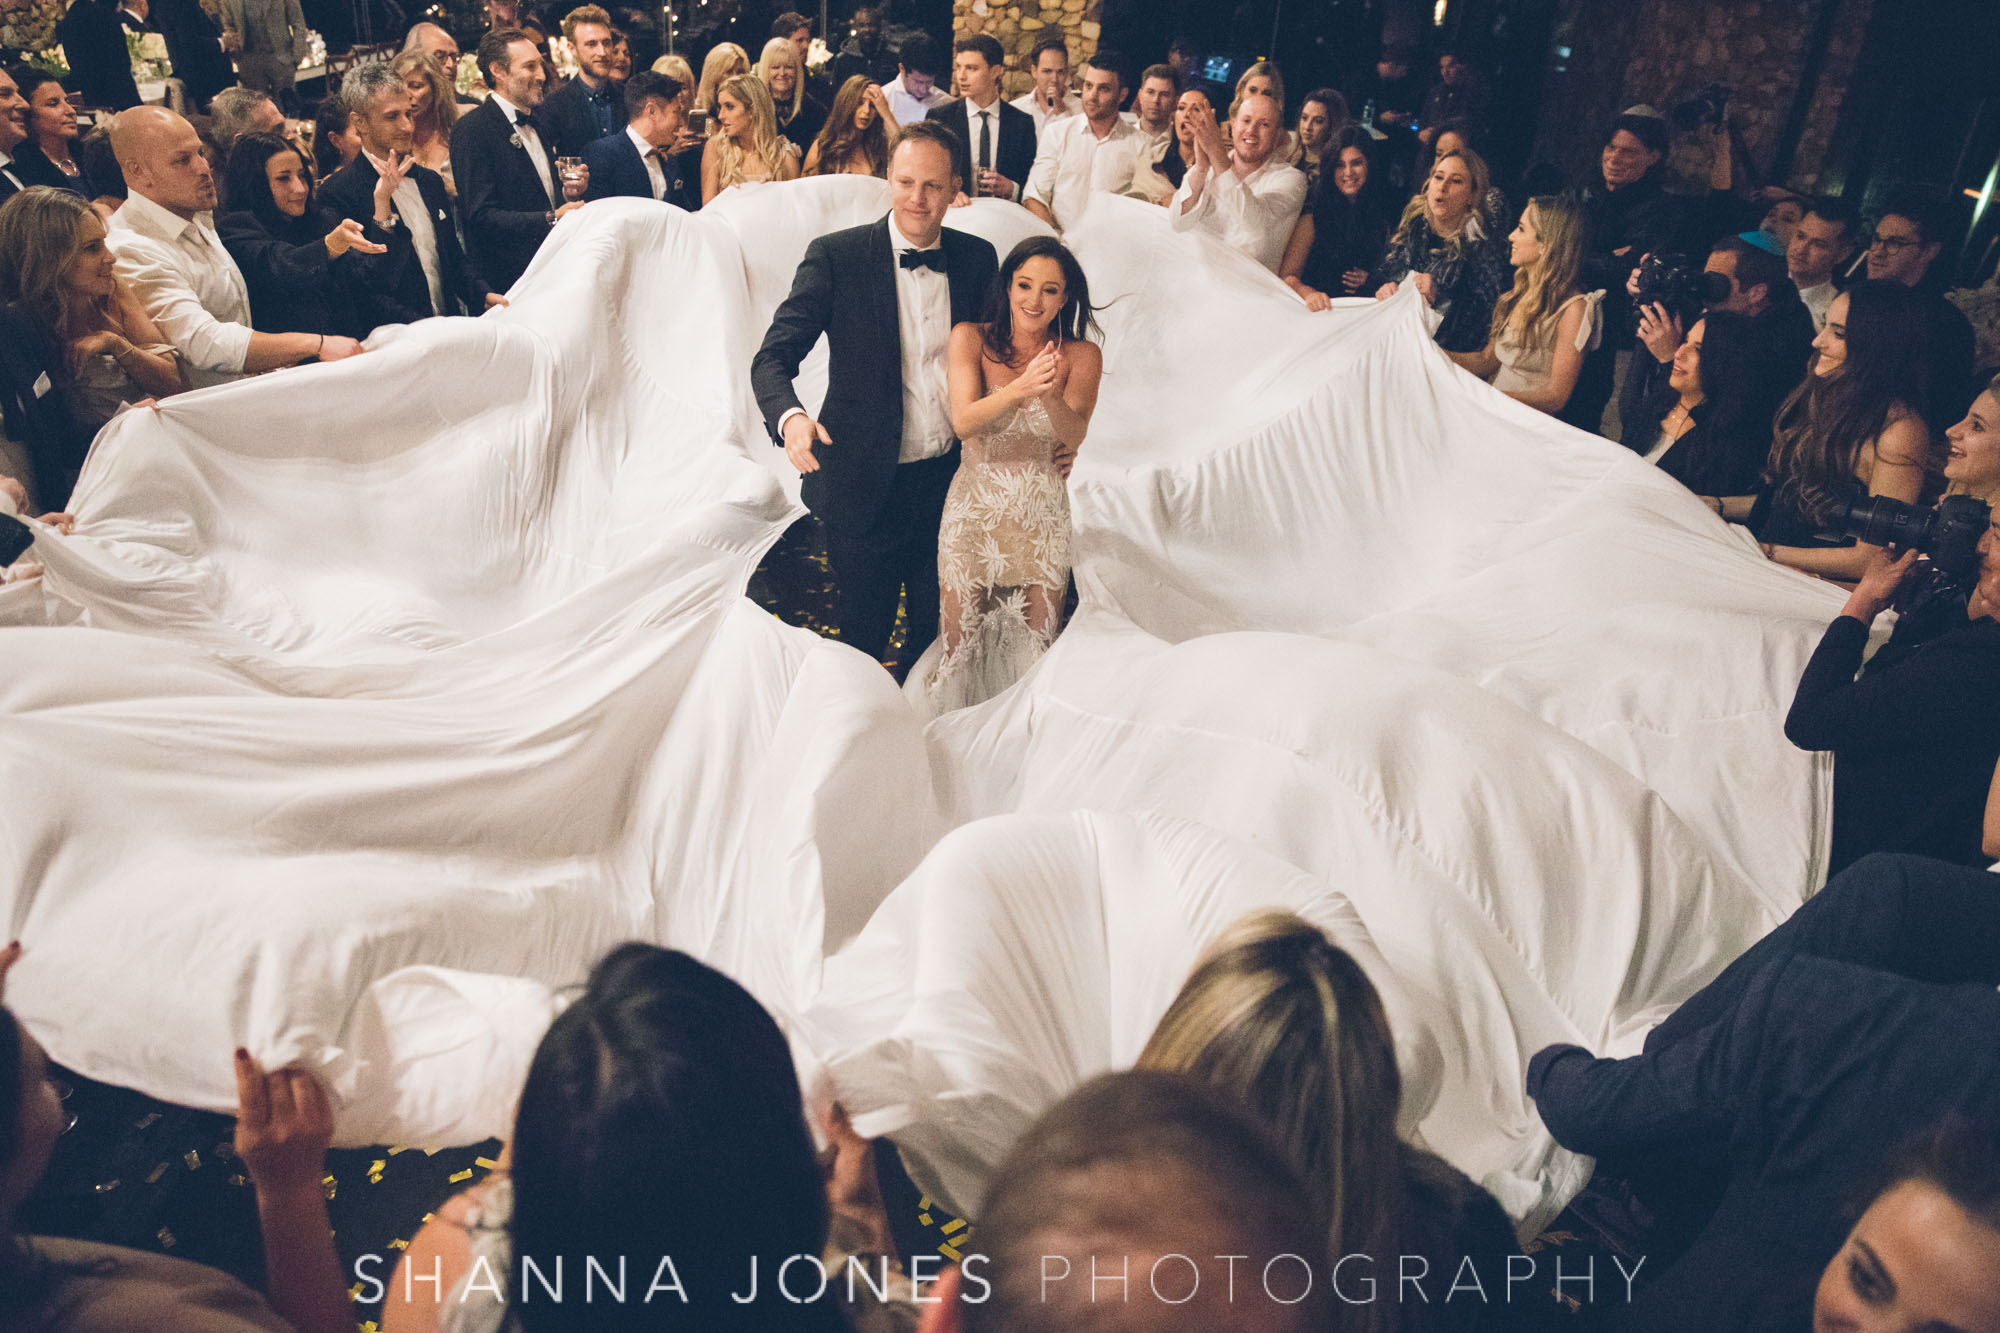 anura-cape-town-wedding-shanna-jones-photography-danna-paul-145.jpg